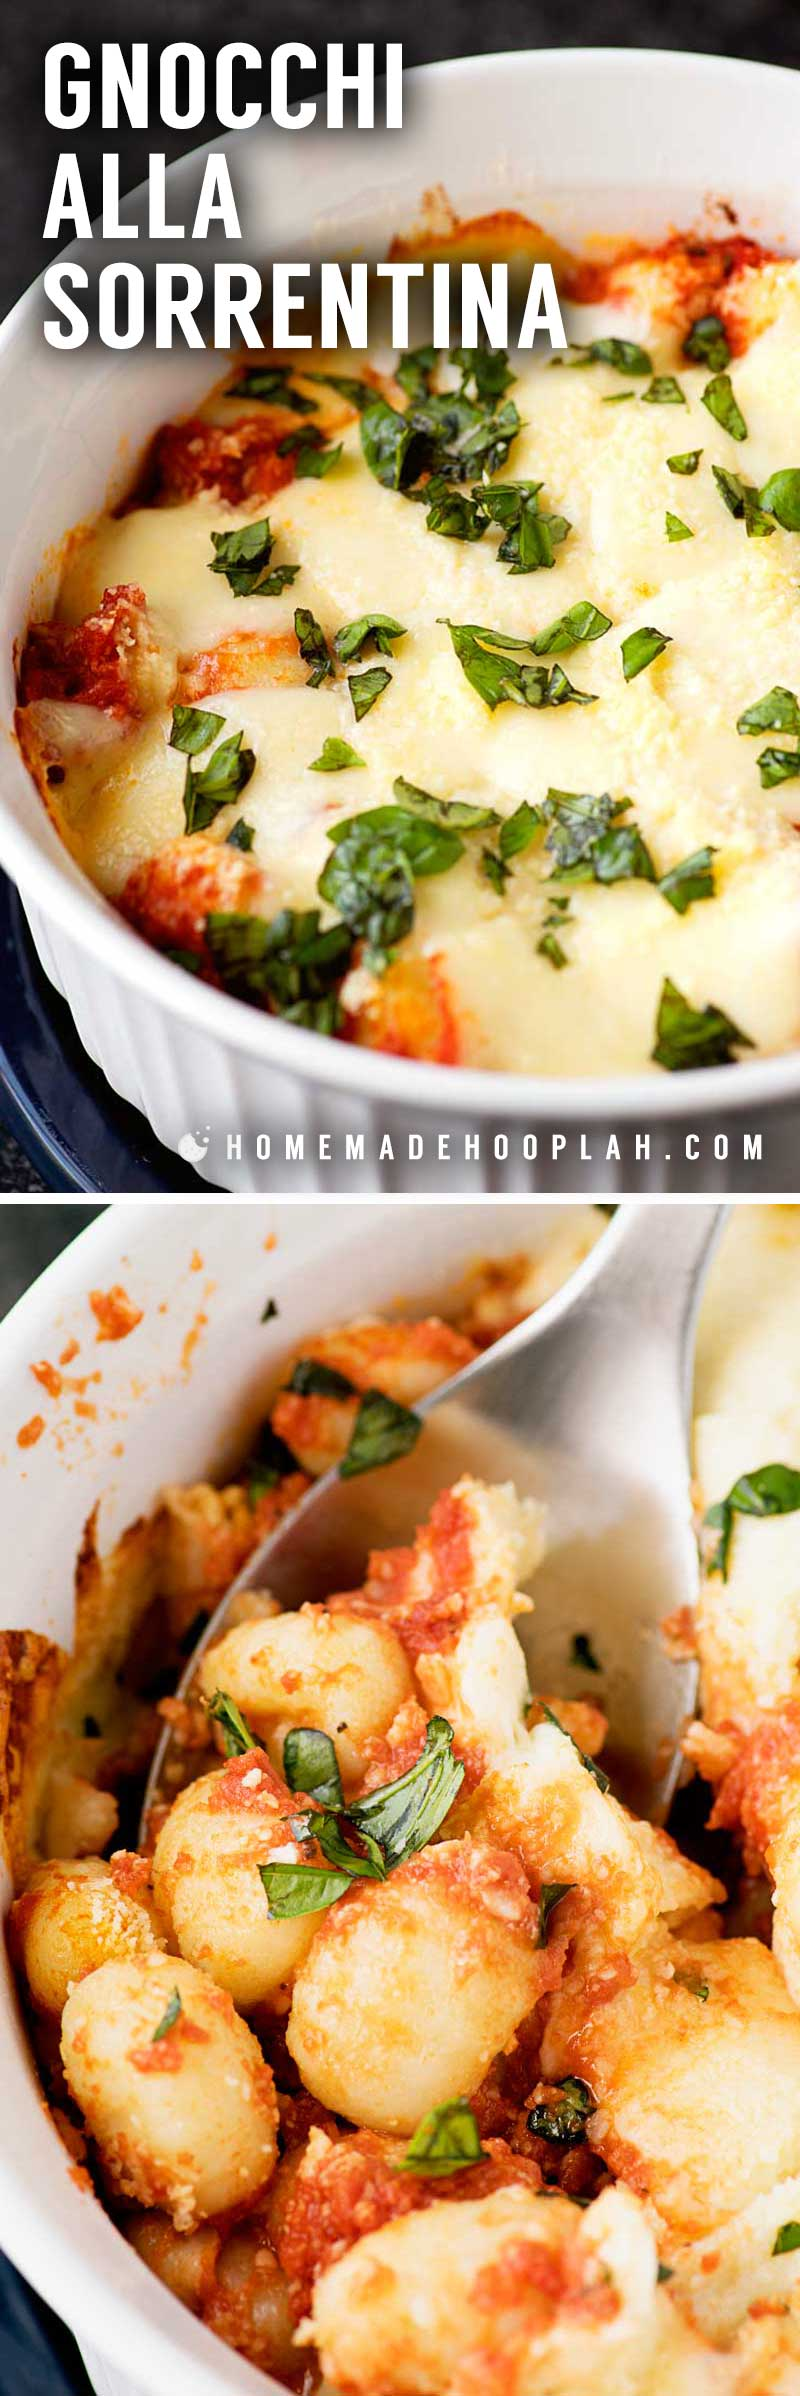 Gnocchi alla Sorrentina! Delicious and tender gnocchi served sorrentina style: baked in a deep dish with homemade tomato sauce and flavored with lots of mozzarella and basil. | HomemadeHooplah.com